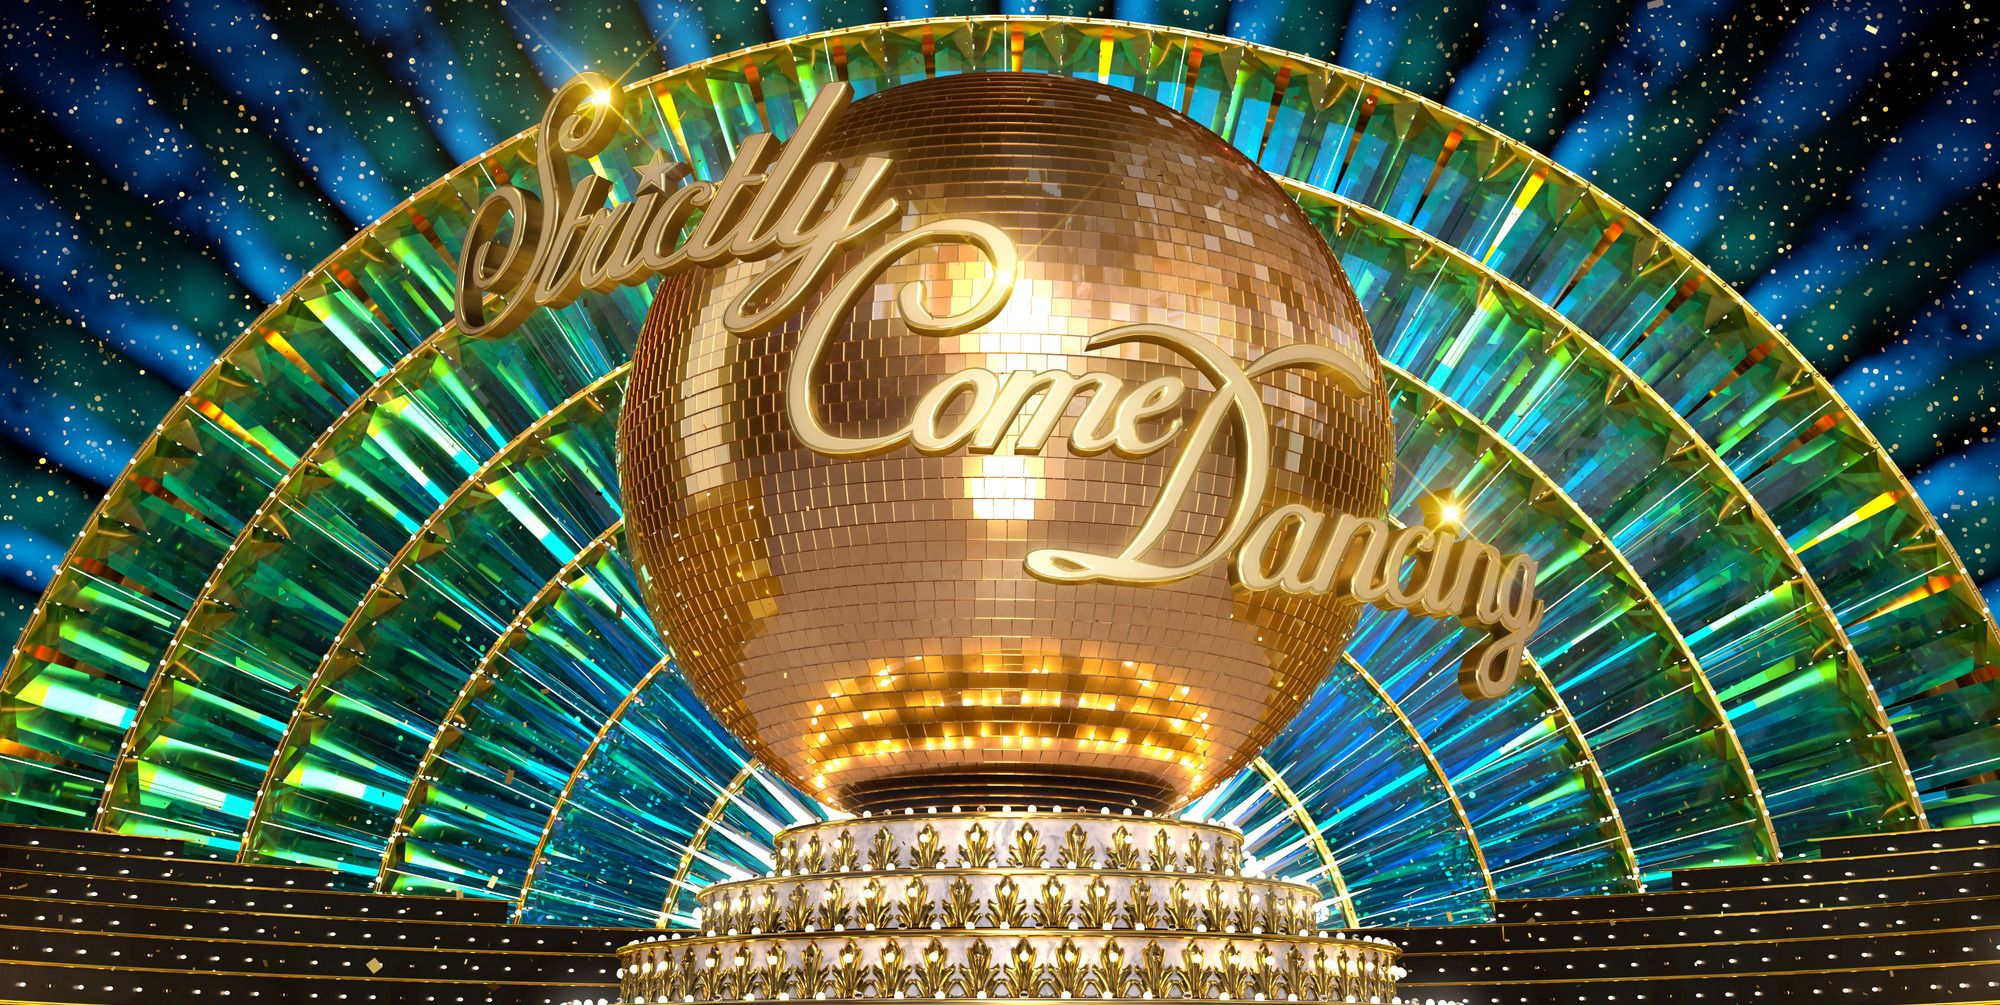 Strictly Come Dancing celebrity contestants